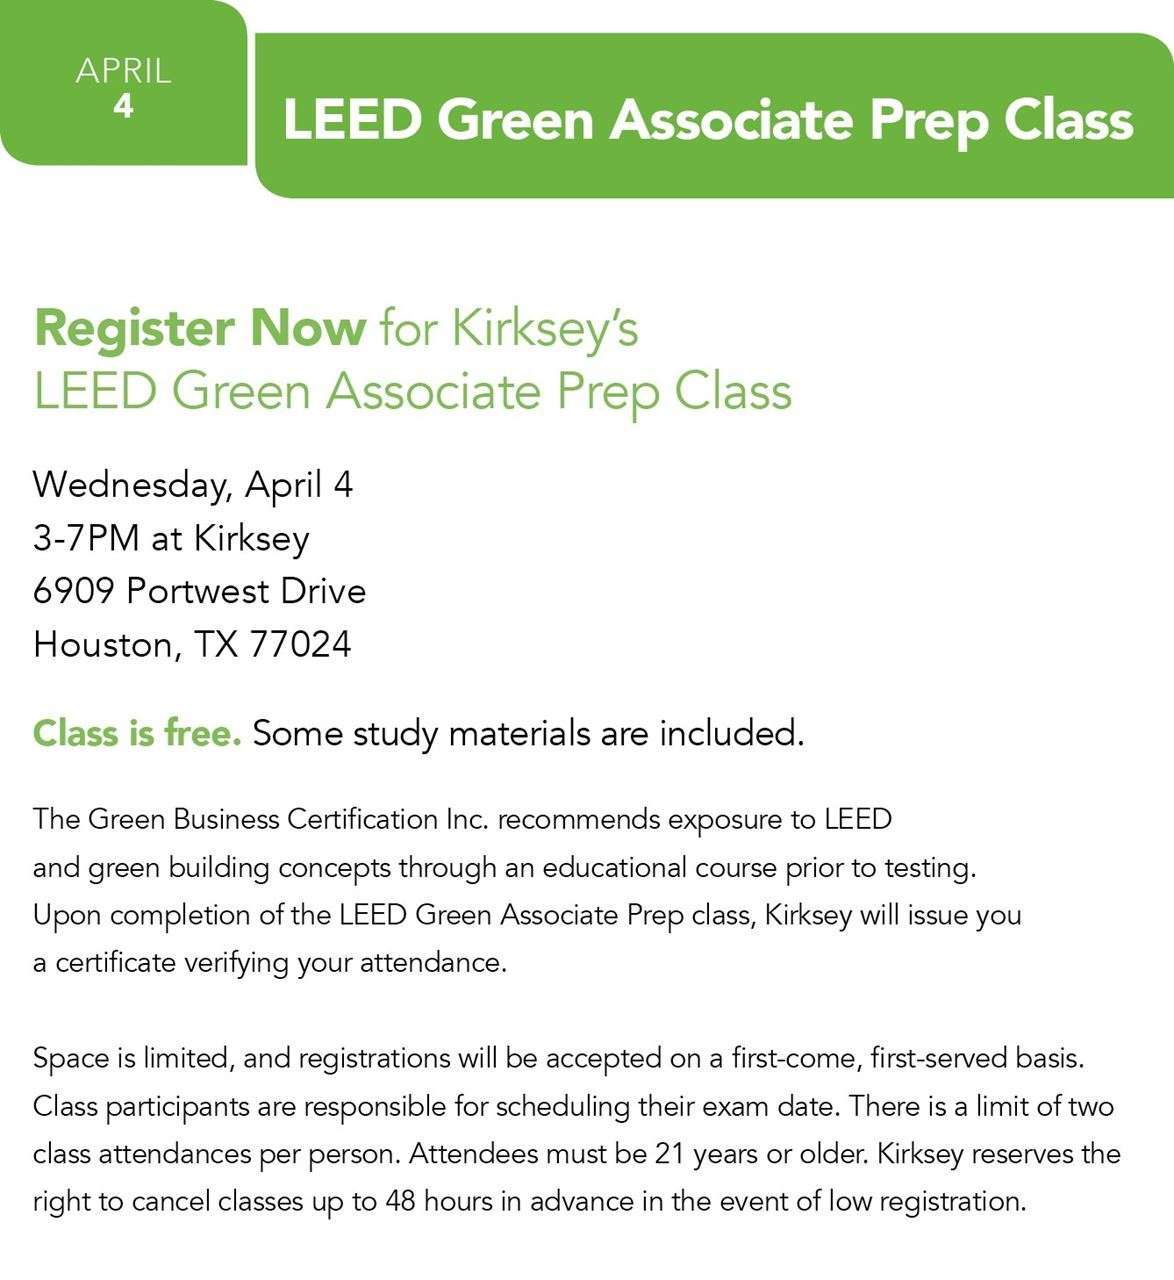 Usgbc texas event calendar kirkseys leed green associate prep class is a resource for those who are interested in gaining the leed green associate credential xflitez Images